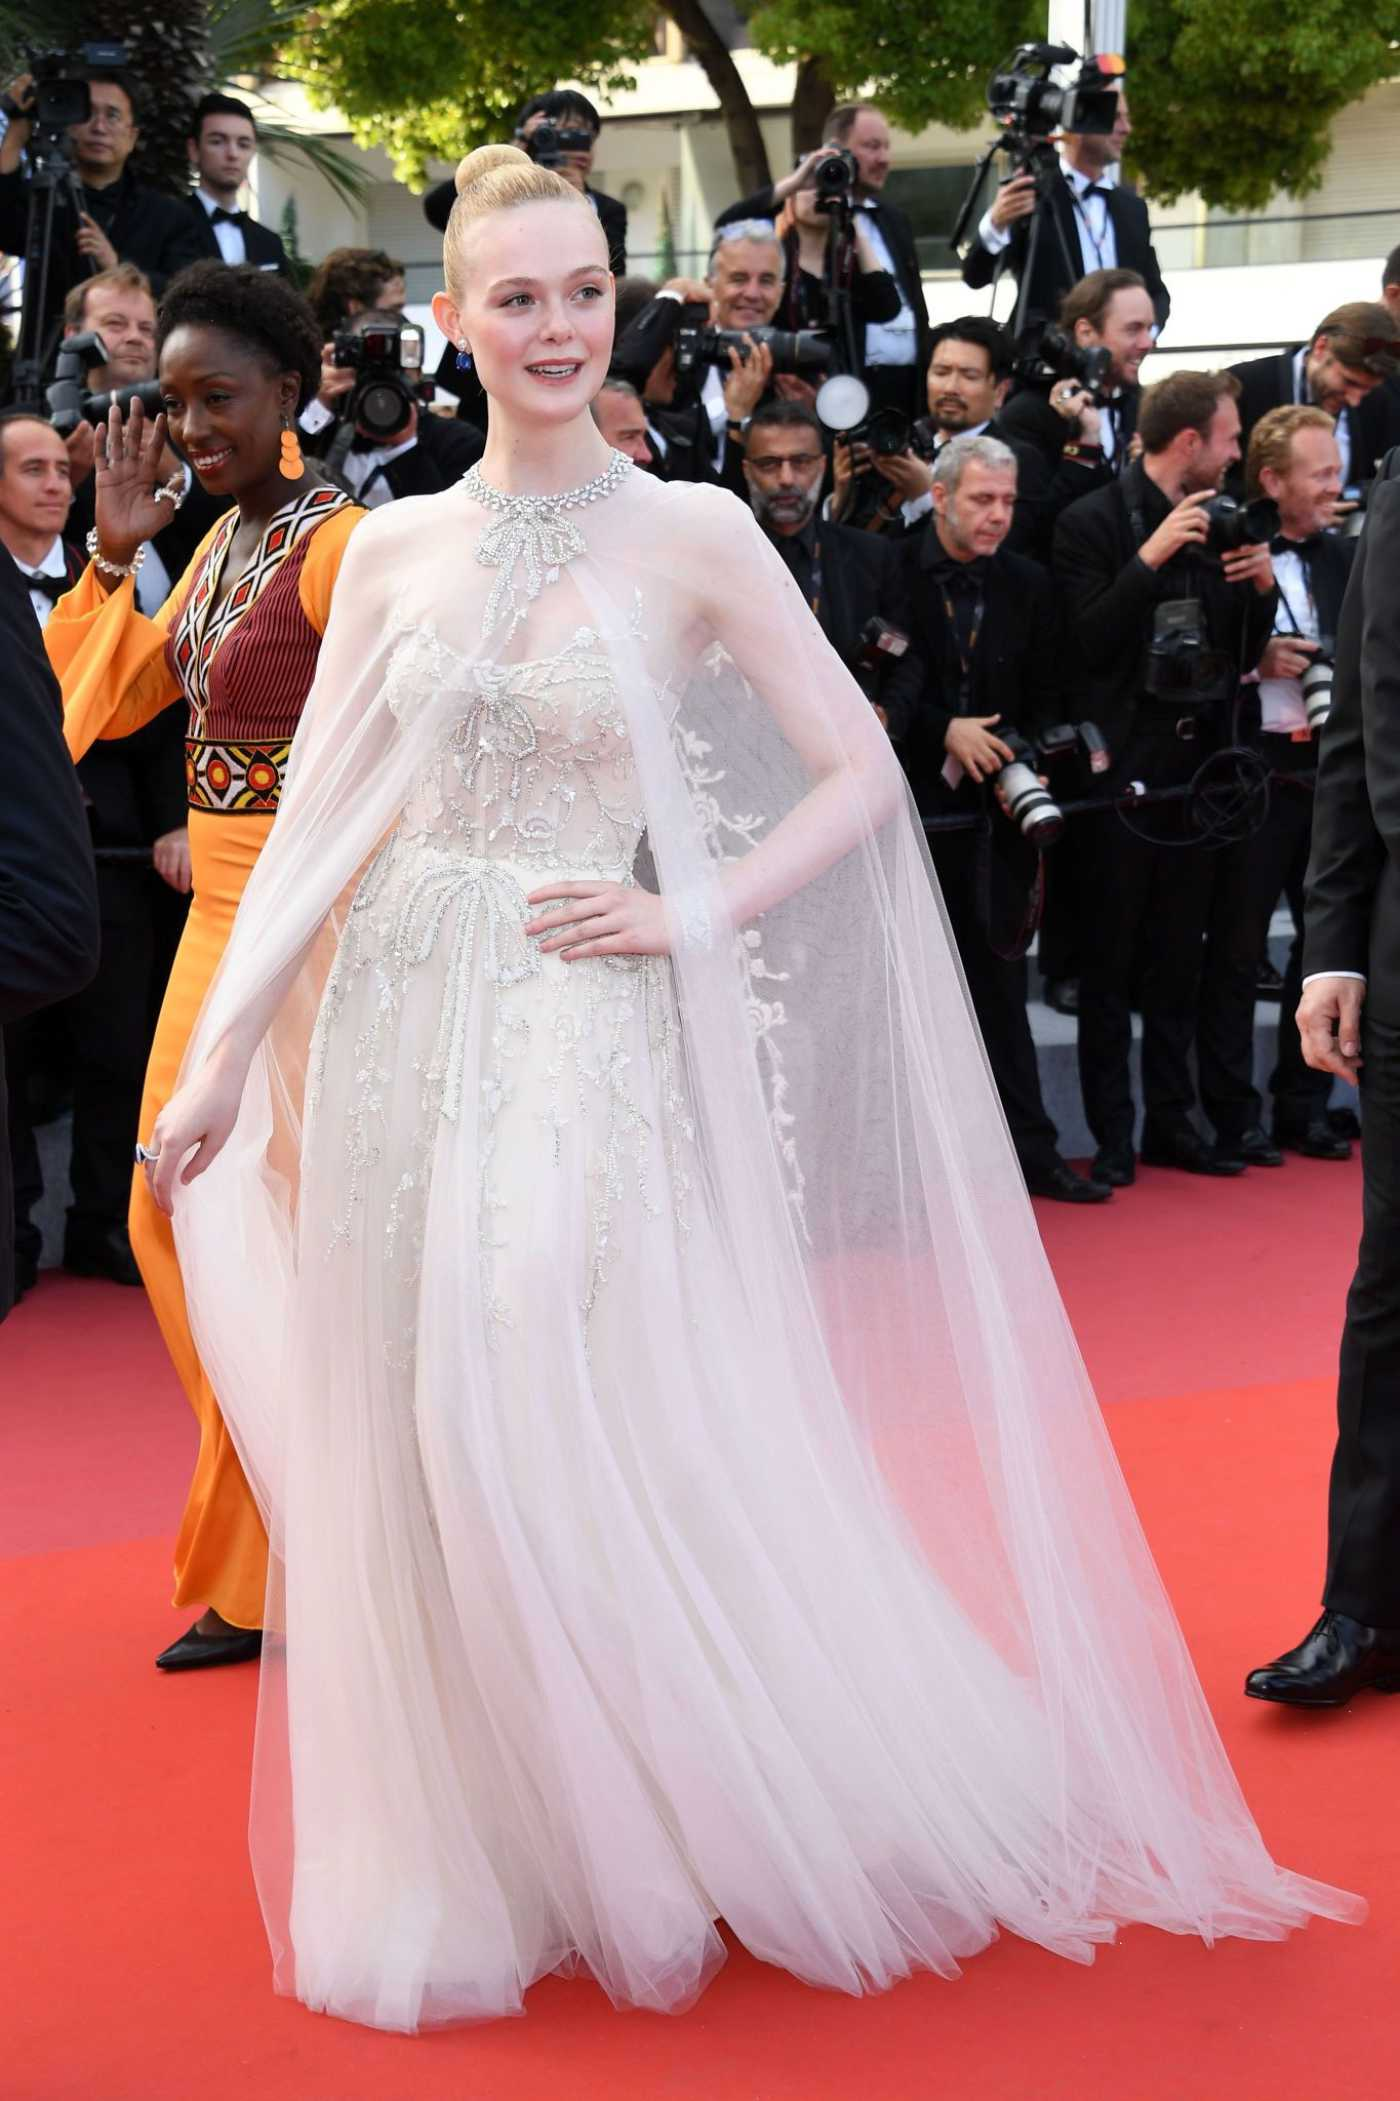 Elle Fanning Attends The Specials Screening During the 72nd Annual Cannes Film Festival in Cannes 05/25/2019